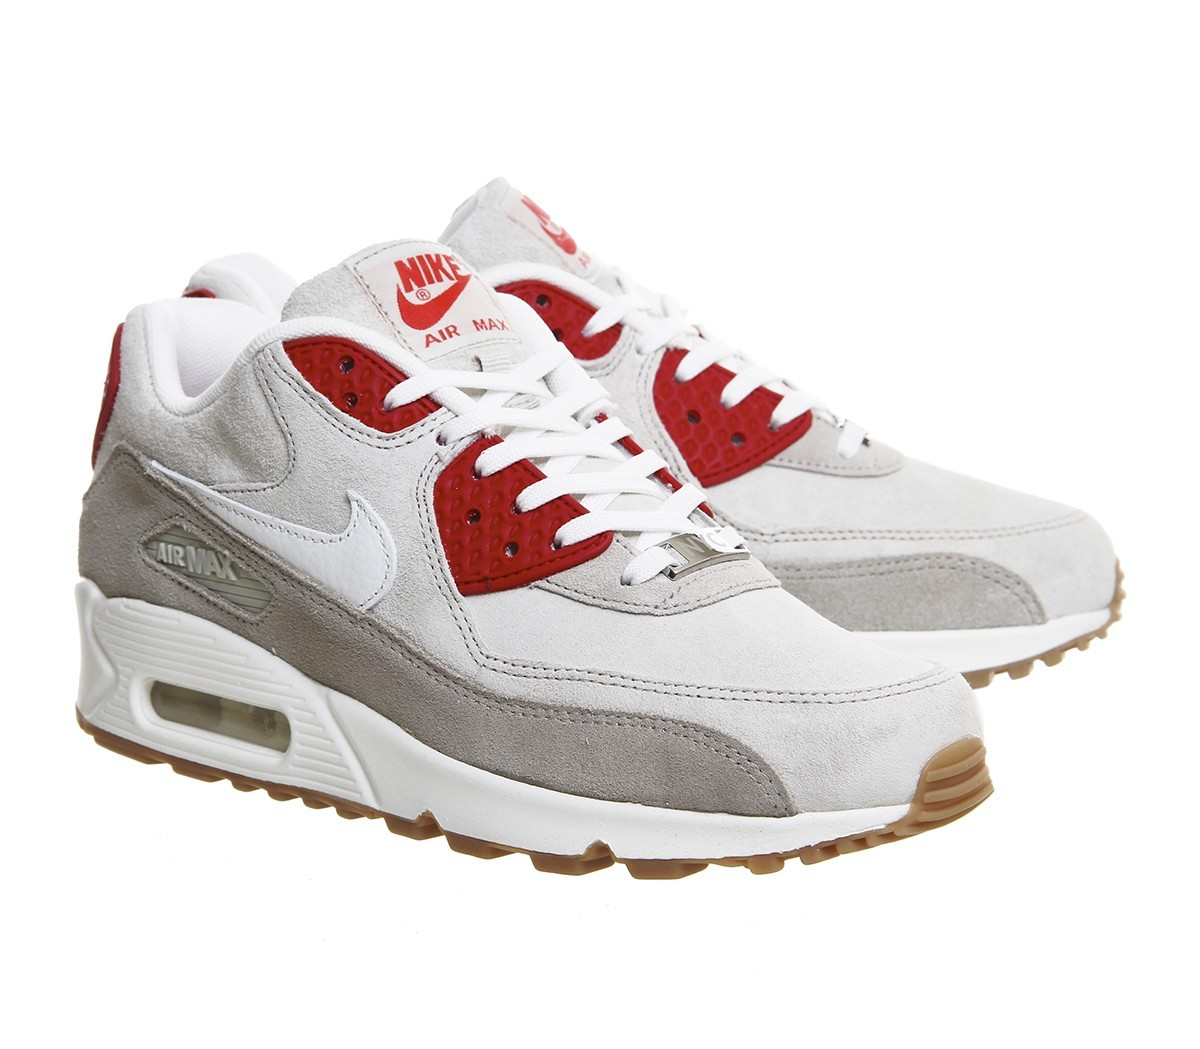 Nike Air Max 90 Femme New York Cheesecake Qs Couleur claire  - Nike Air Max 90 Femme New York Cheesecake Qs Couleur claire-01-3